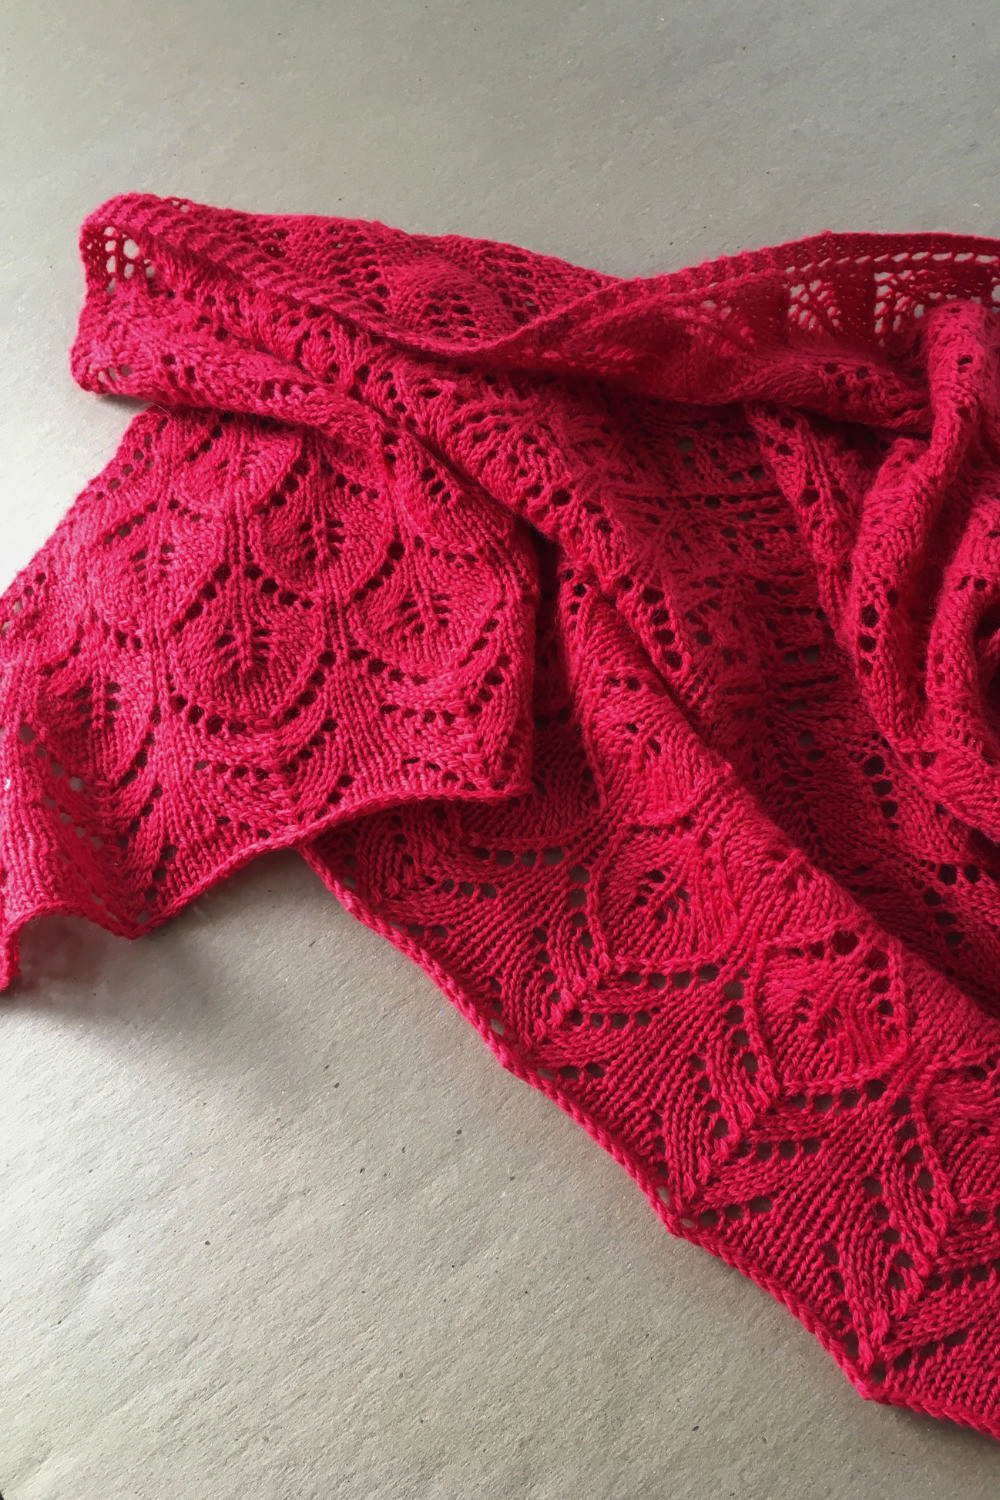 new design for a lace shawl